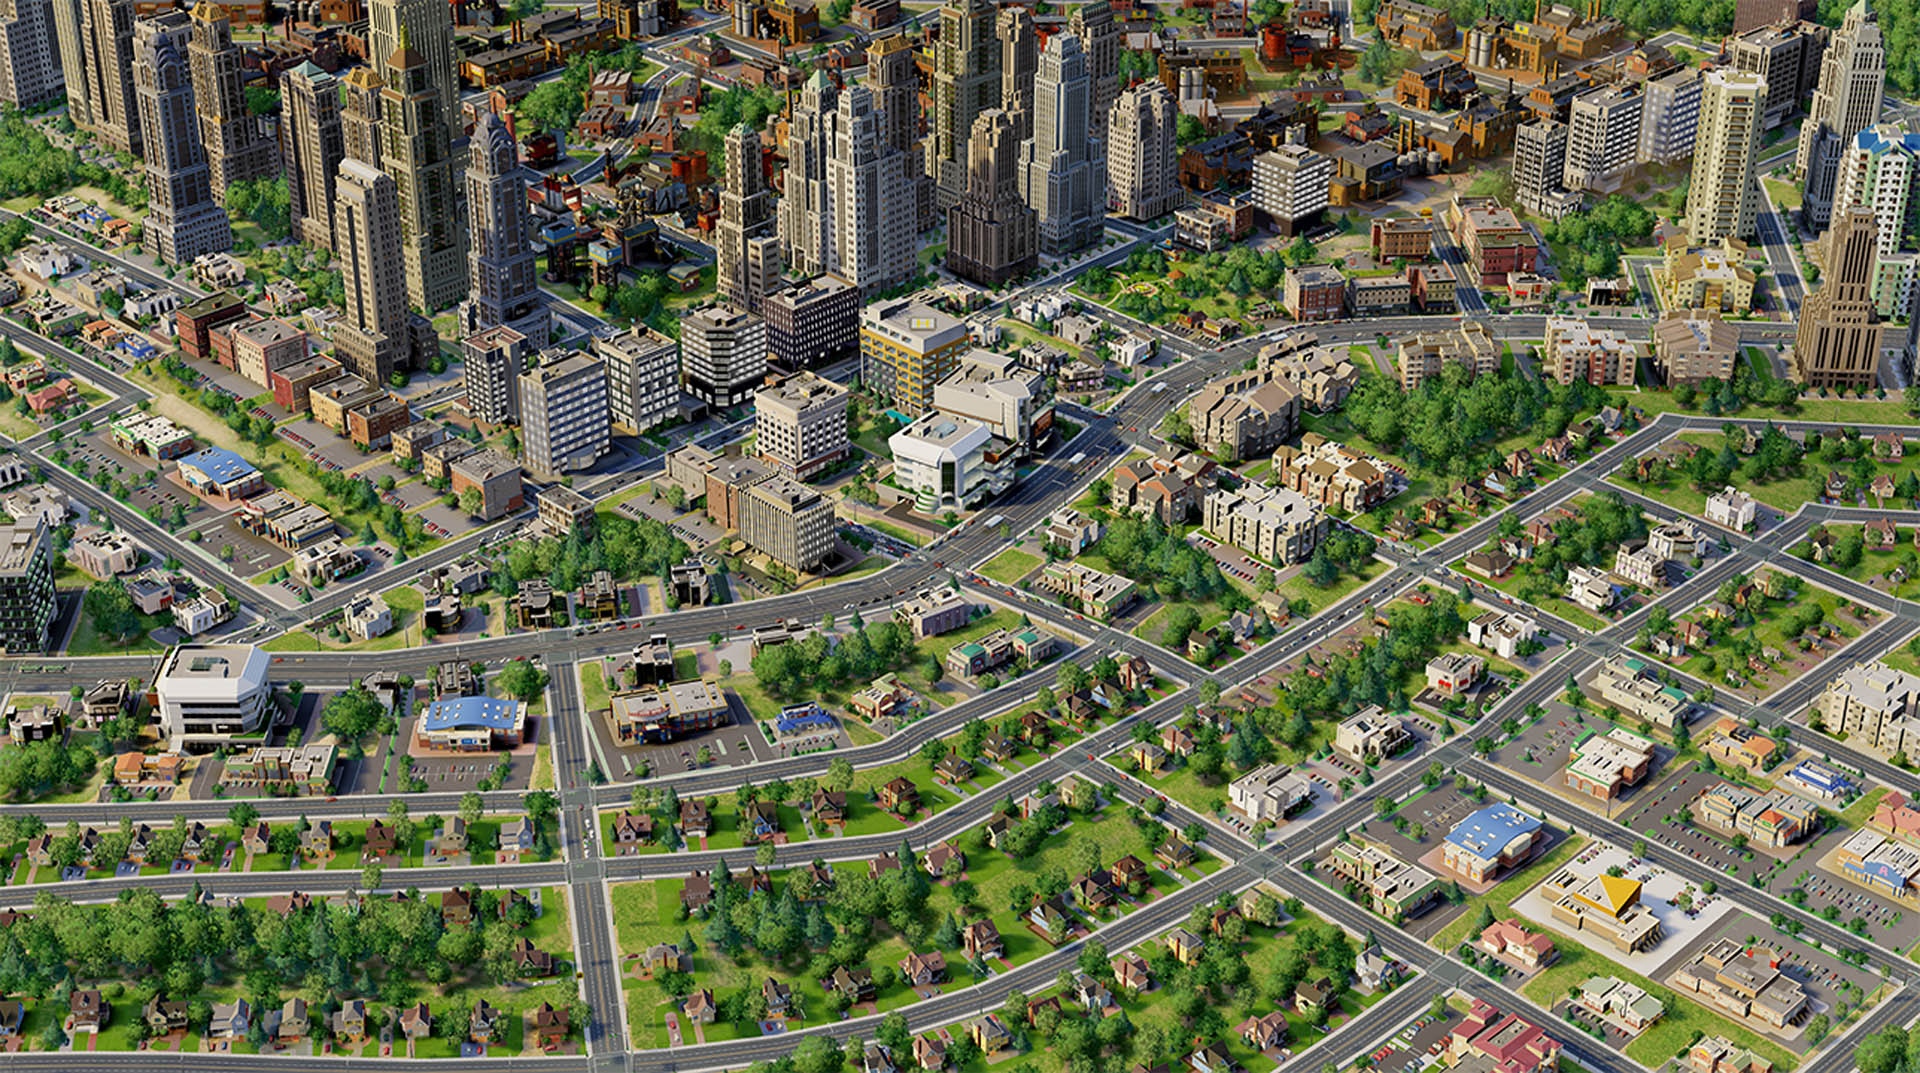 Sim City Game - Android, Mac, PC and iOS - Parents Guide